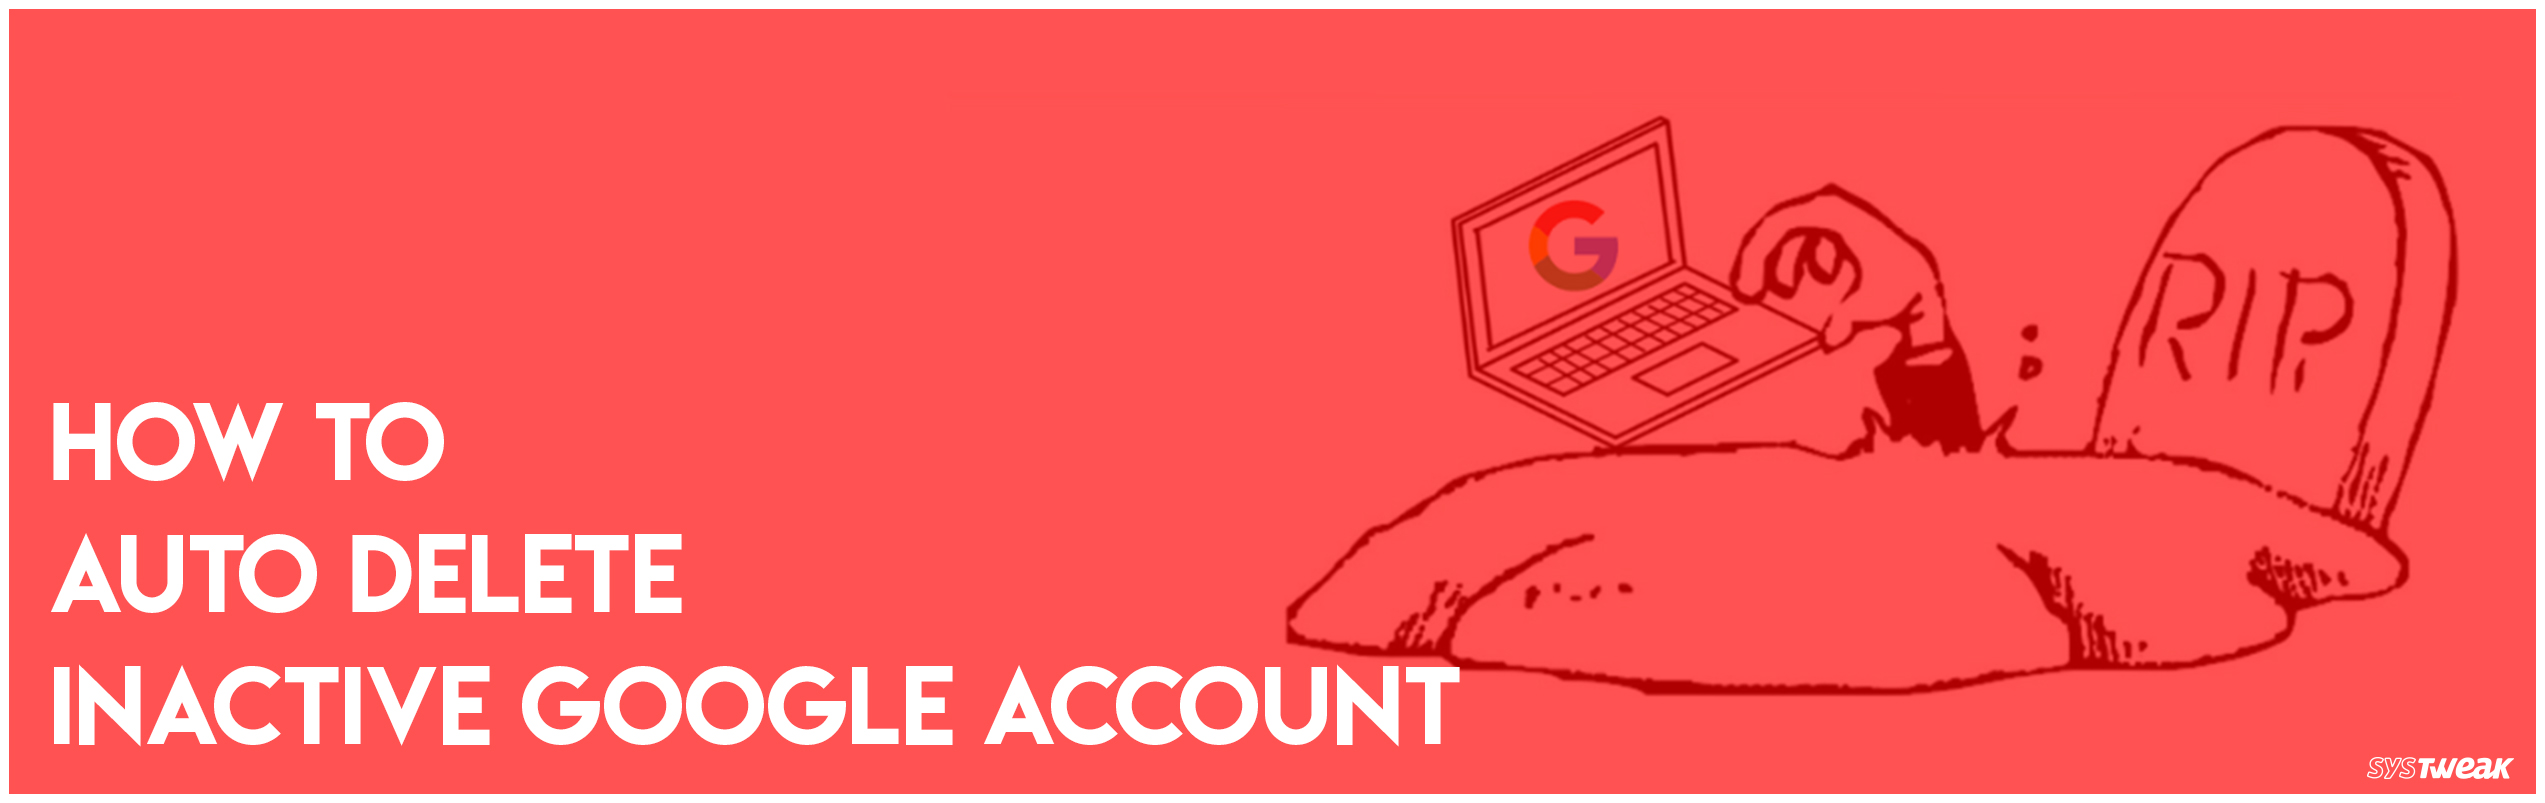 Set Your Google Account To Auto Delete After Certain Time Of Inactivity